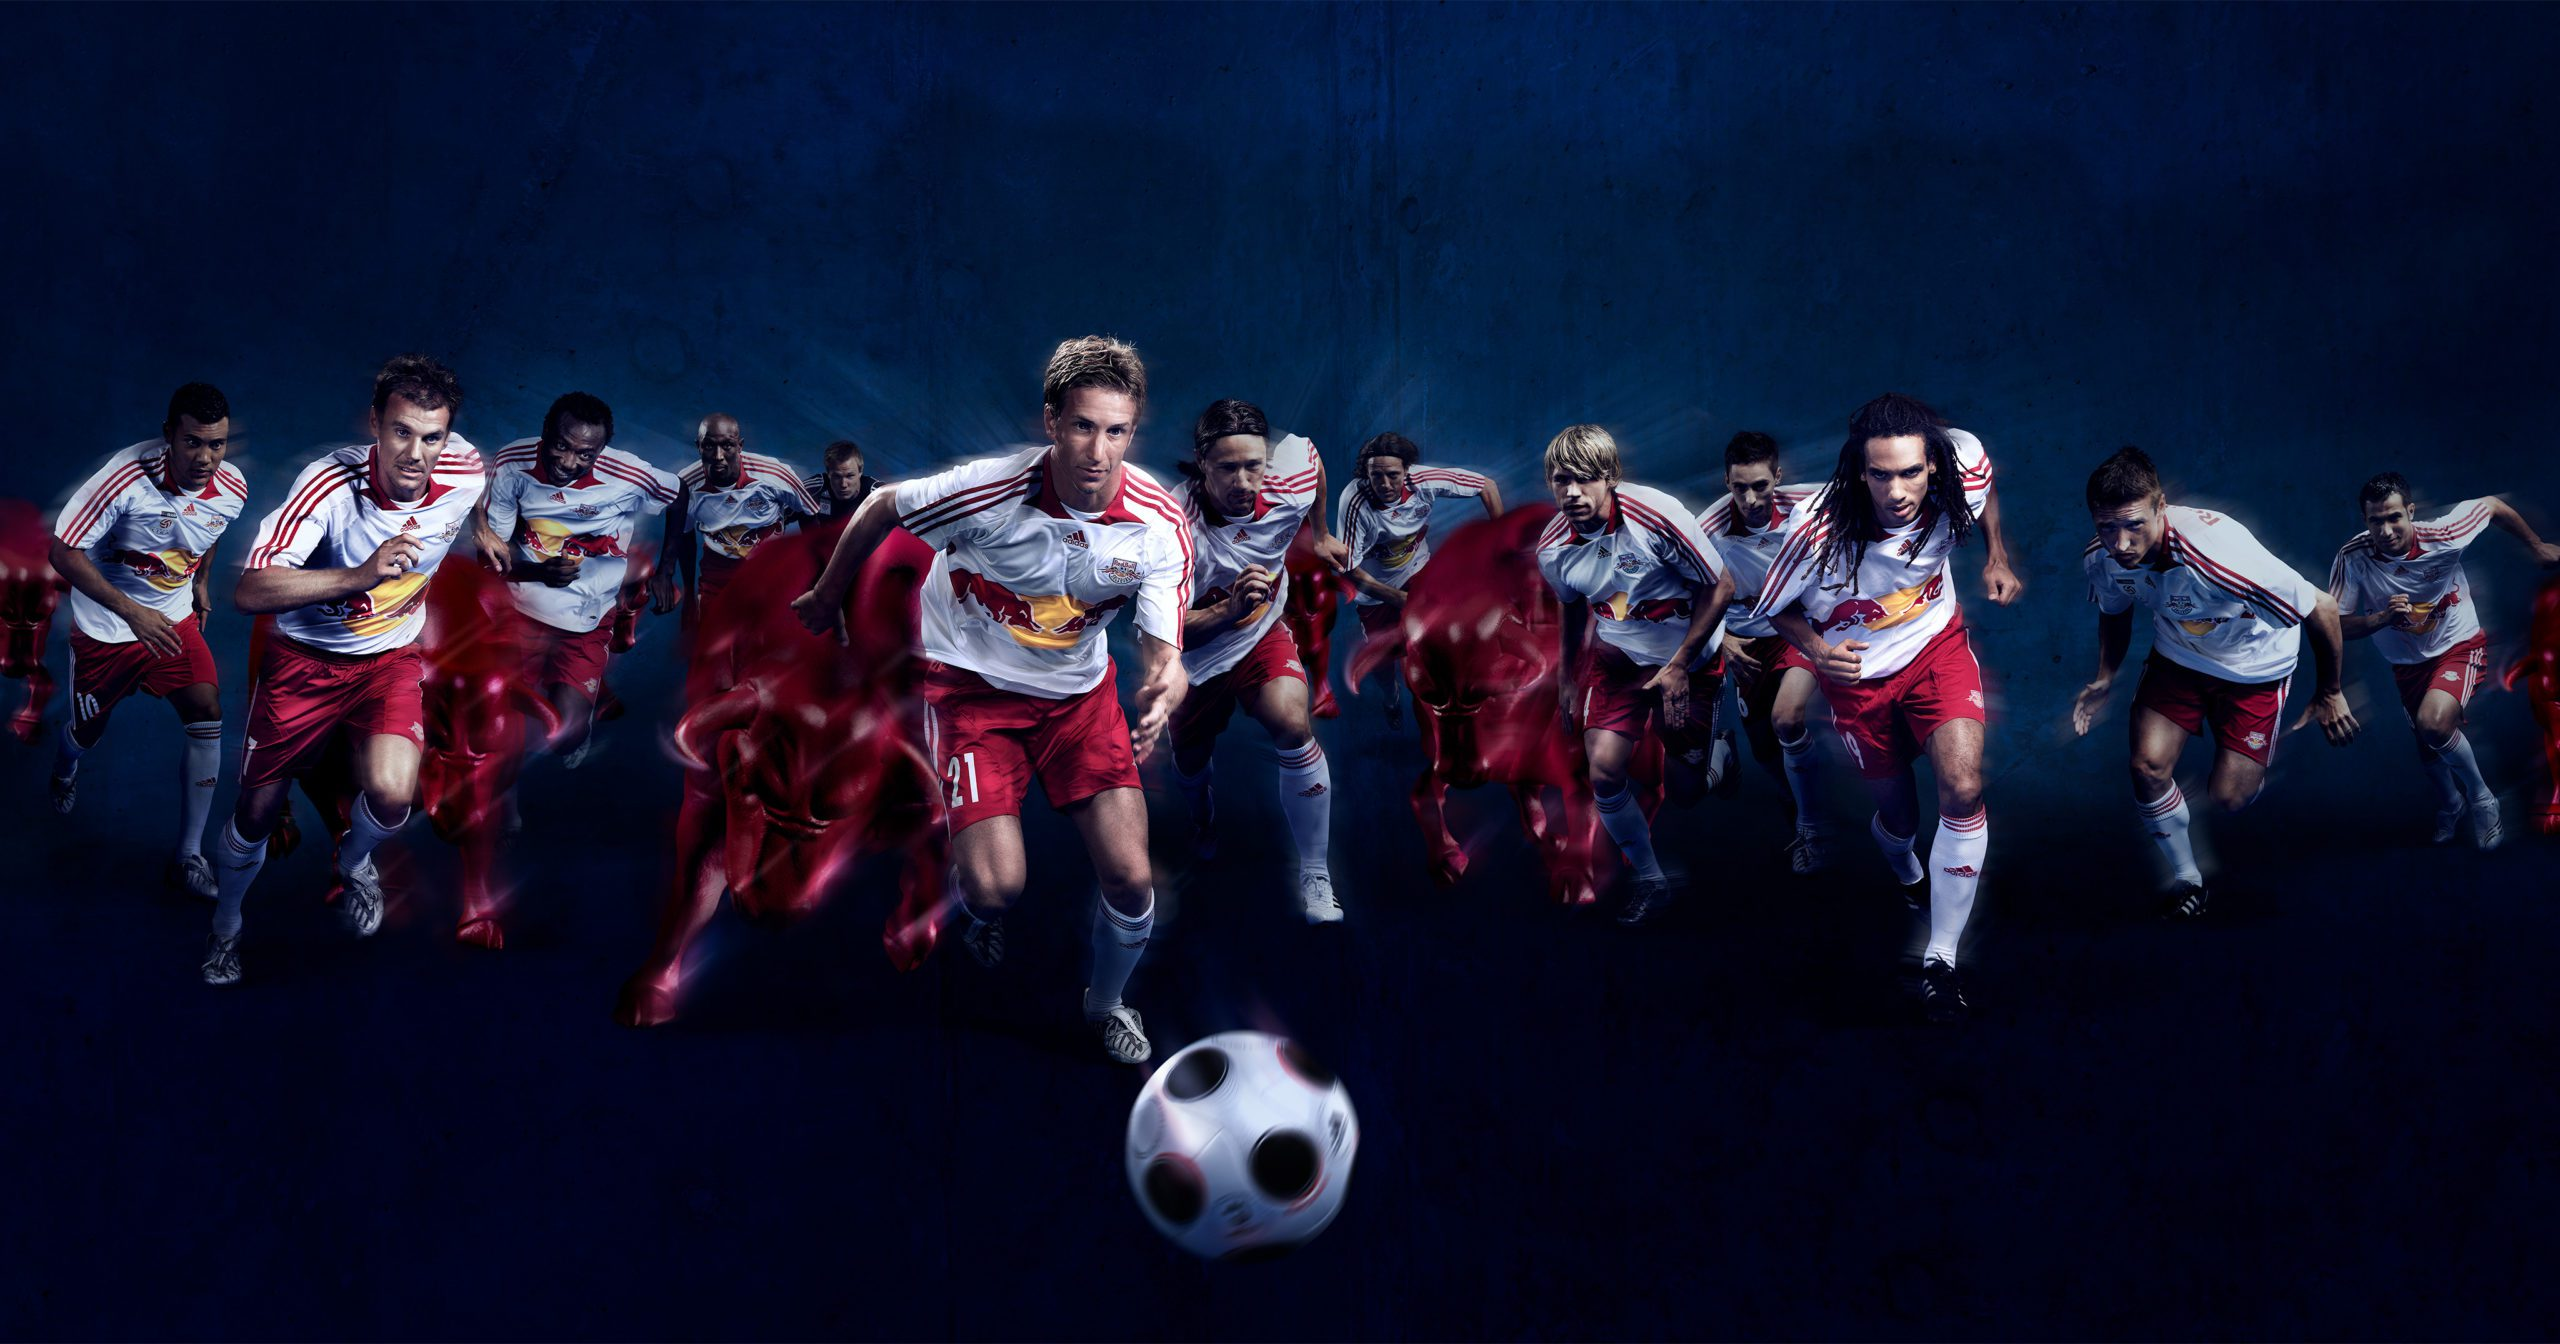 RED BULL_RB Salzburg // AGENCY_Red Bull Media